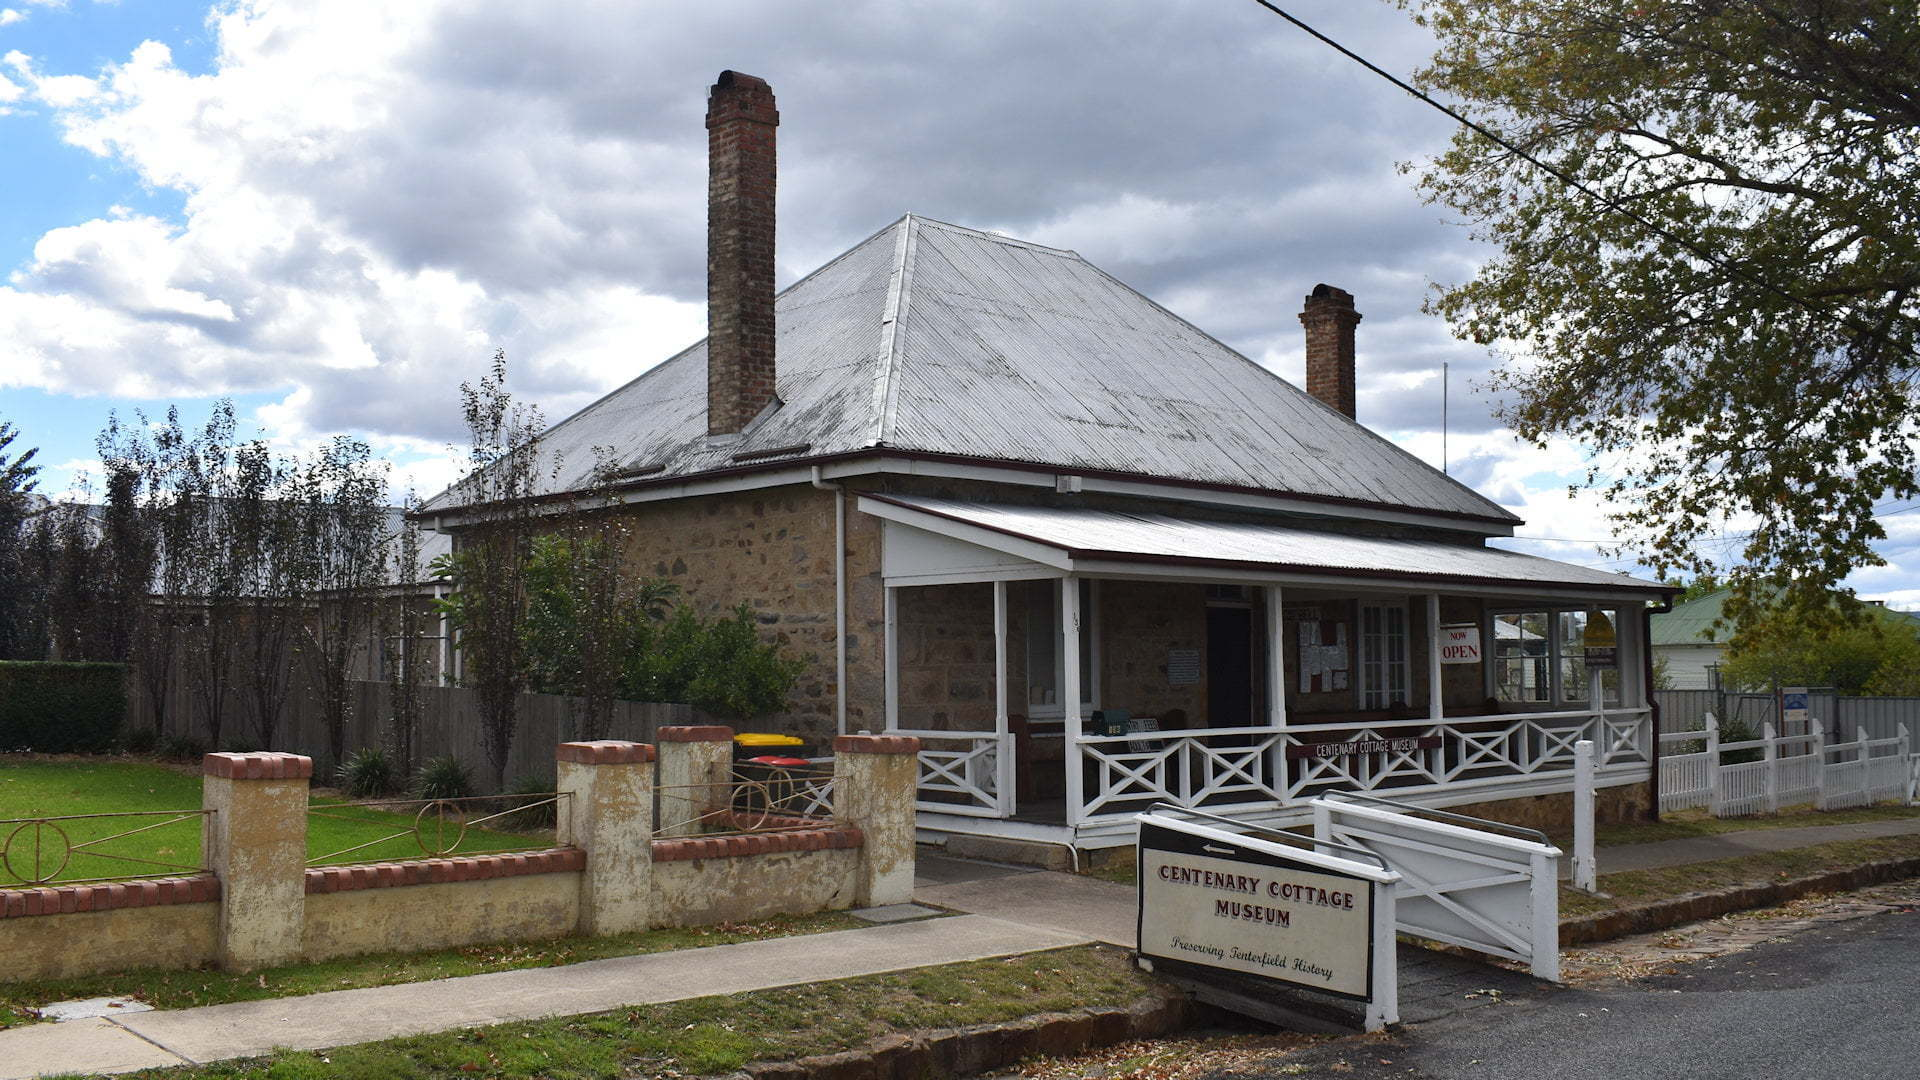 Centenary Cottage Museum in Tenterfield, taken from the street out the front